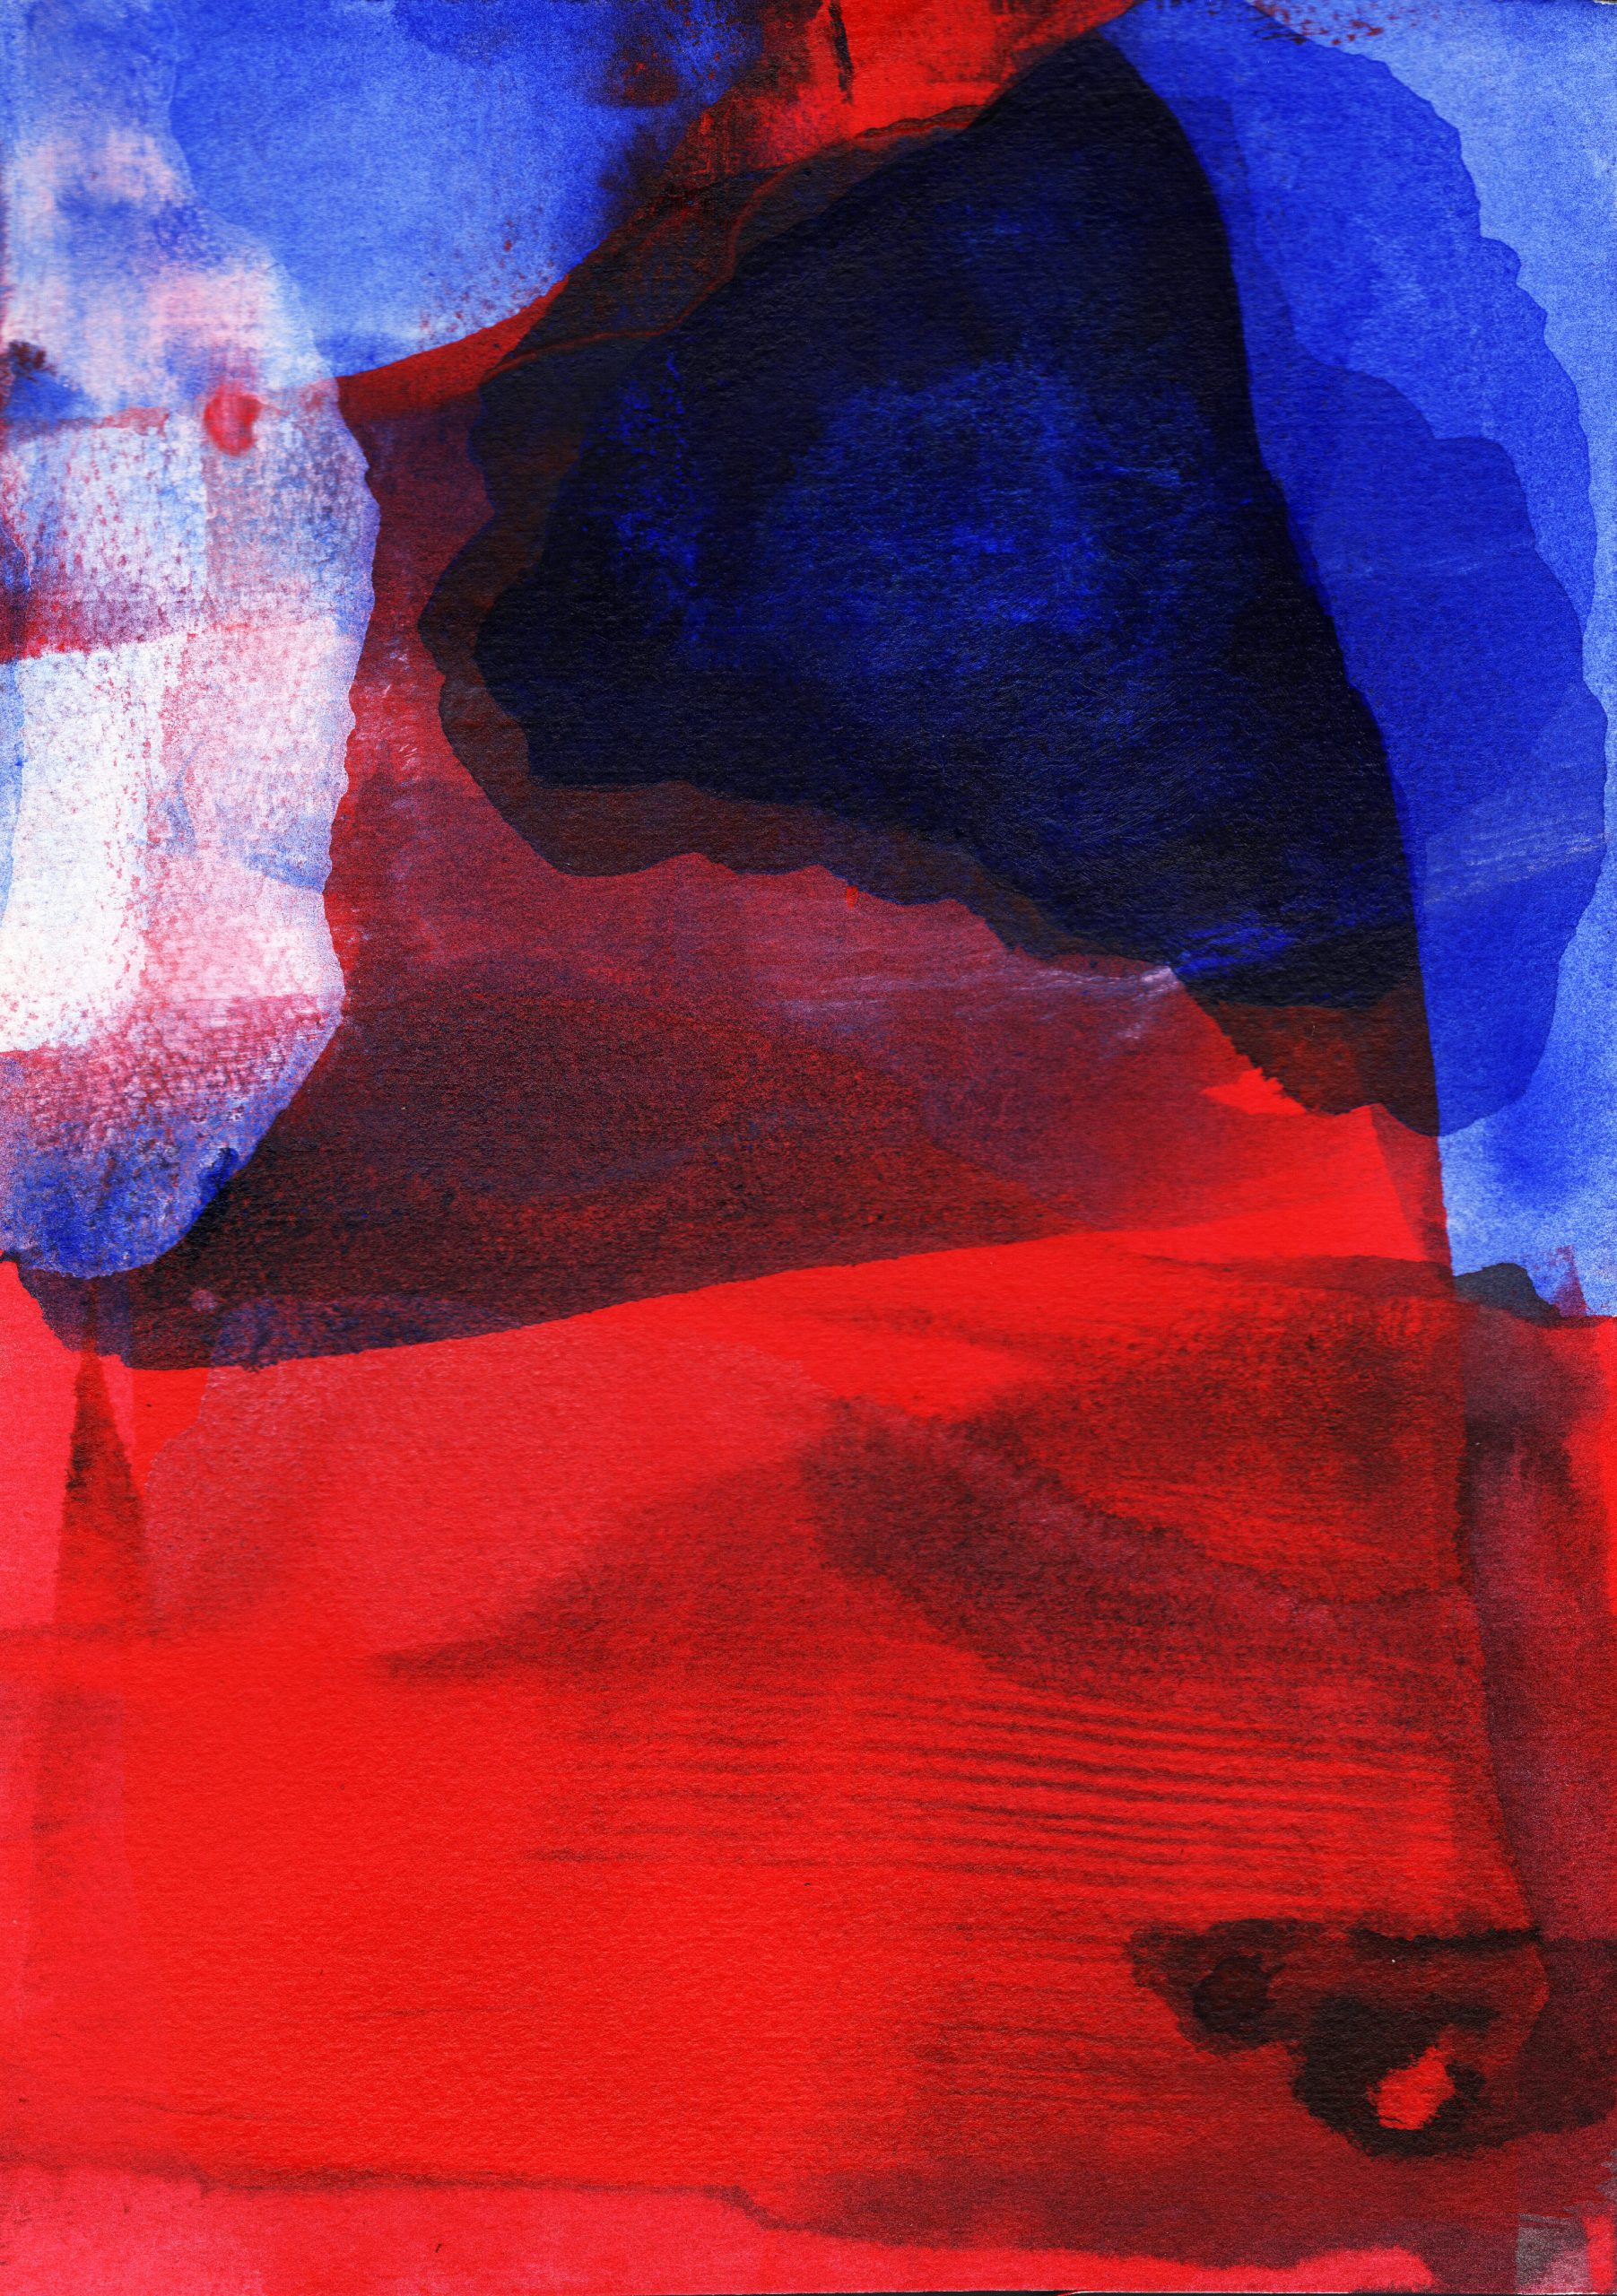 (12) Susana Depetris - Red and Blue Image